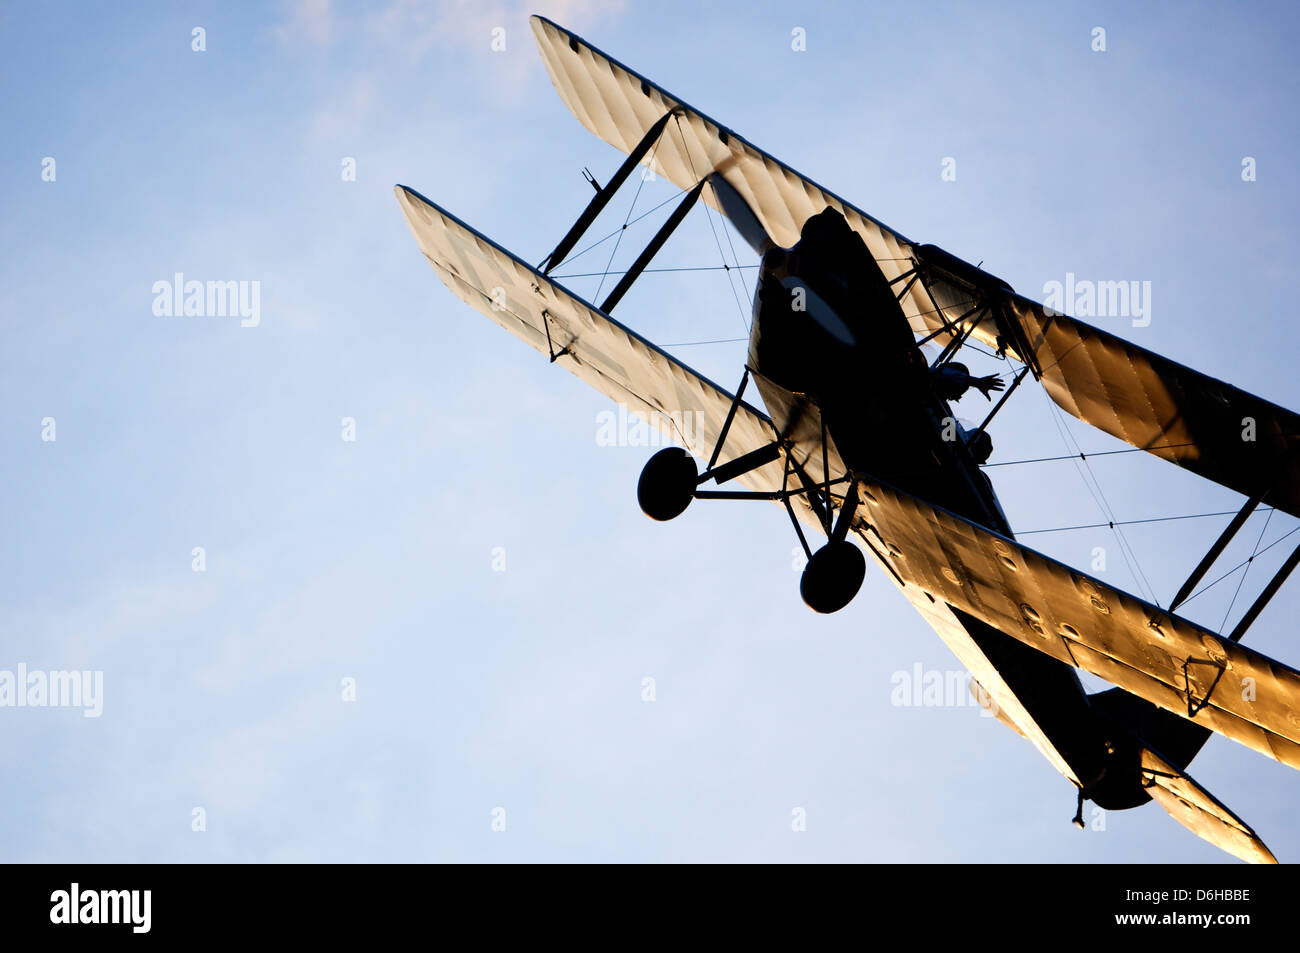 Biplane flying with blue sky in background - Stock Image